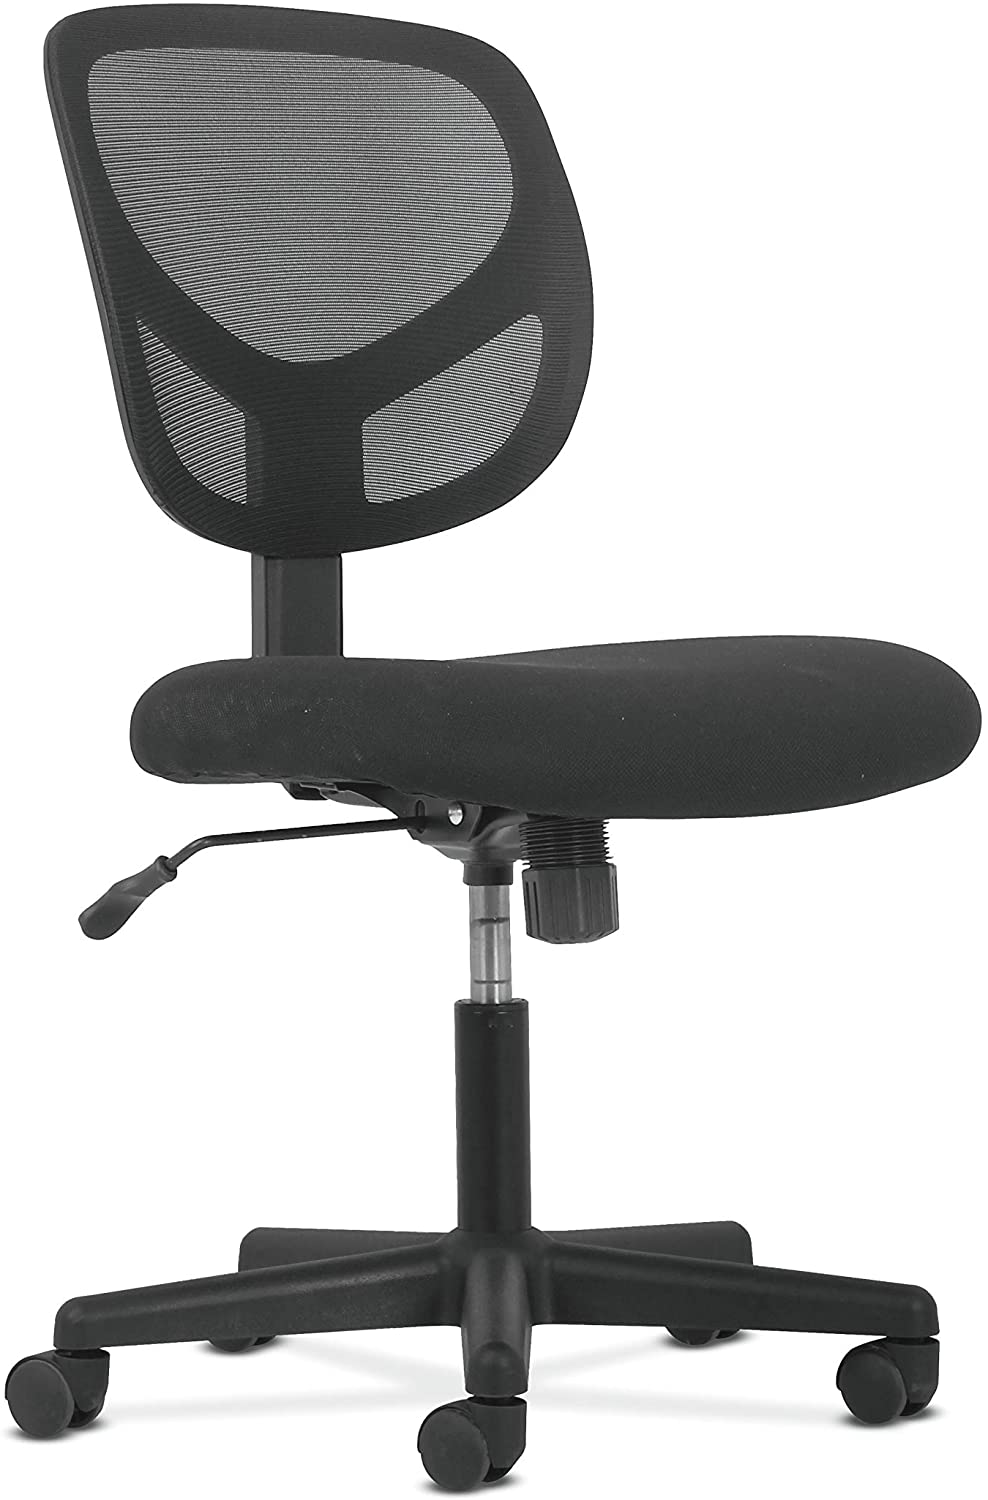 Hon Bsxvst101 Sadie Swivel Mid Back Mesh Task Without Arms Ergonomic Computer Office Chair Hvst101 Black Furniture Decor